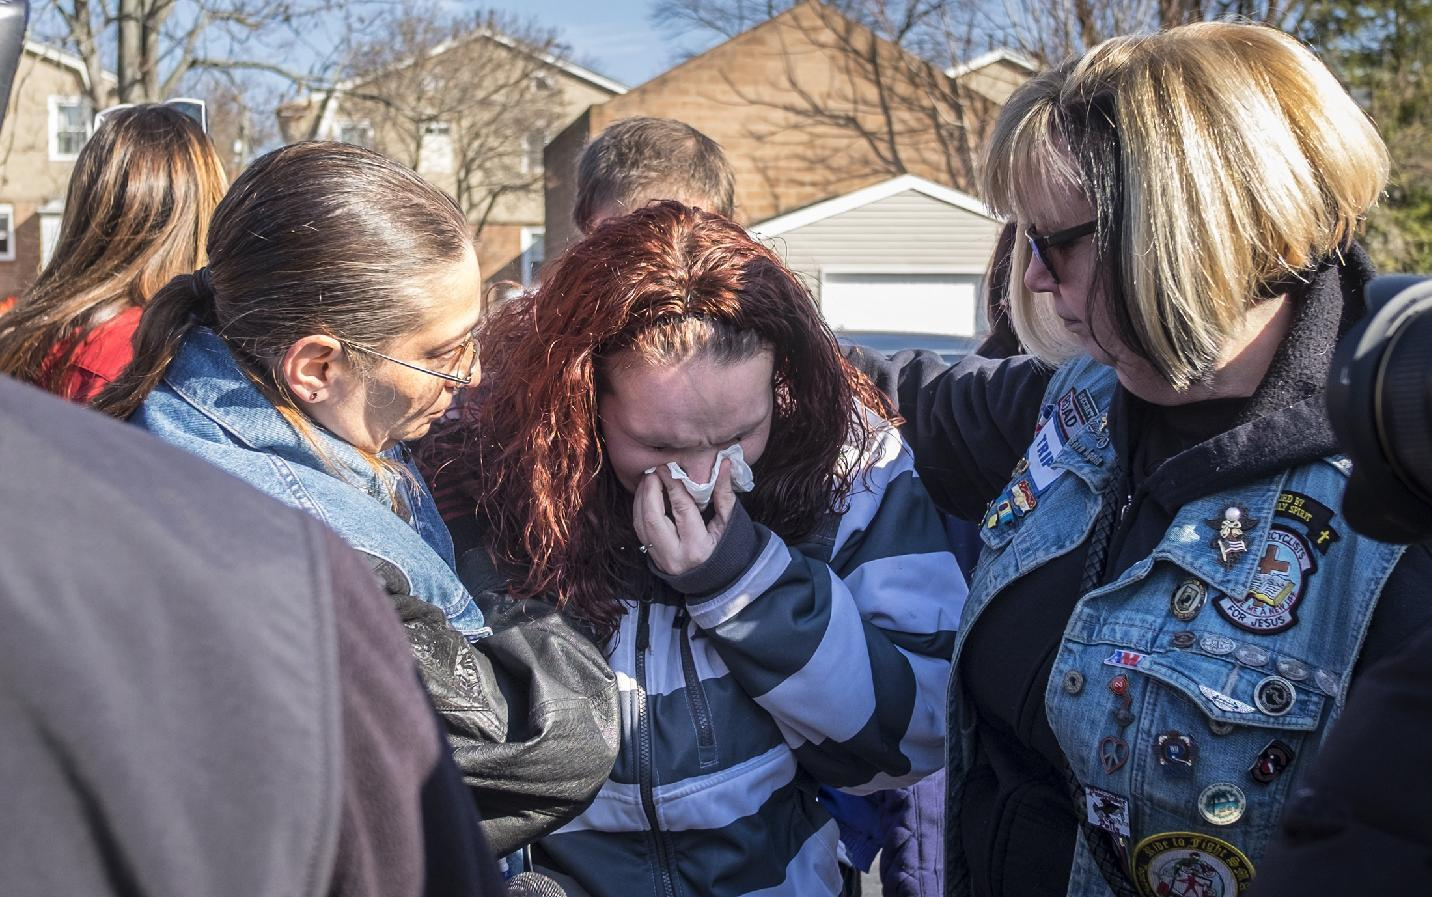 Rose Hunsicker, center, the biological mother of Grace Packer, weeps as she prays with members of Bikers Against Child Abuse outside the church Monday, Jan. 16, 2017, on her way in to a memorial service for Packer, the local teen who who authorities say was killed and dismembered by her adoptive mother and her boyfriend, at the New Life Presbyterian Church in Glenside, Pa. (Ed Hille/The Philadelphia Inquirer via AP)